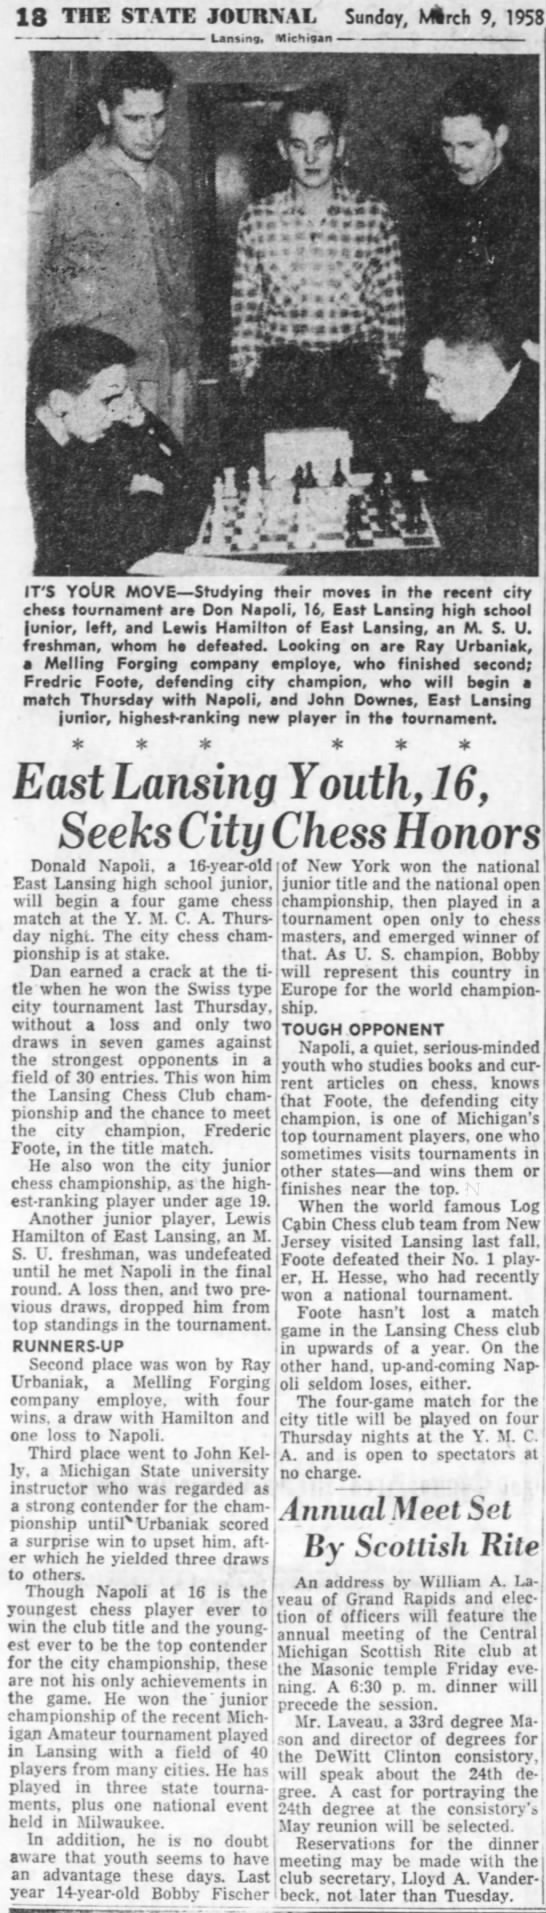 East Lansing Youth, 16, Seeks City Chess Honors -